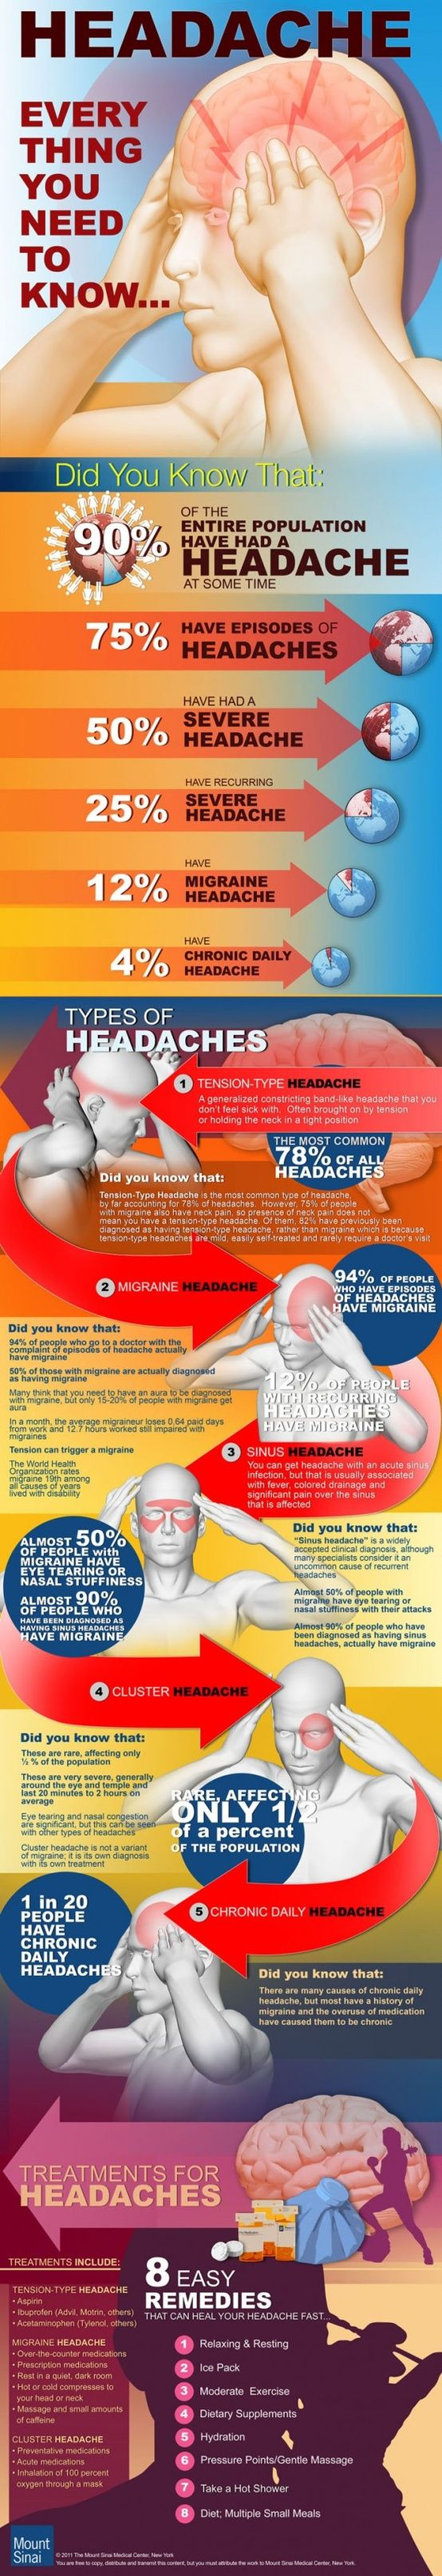 Migraines and cluster headaches which I always assumed are migraines